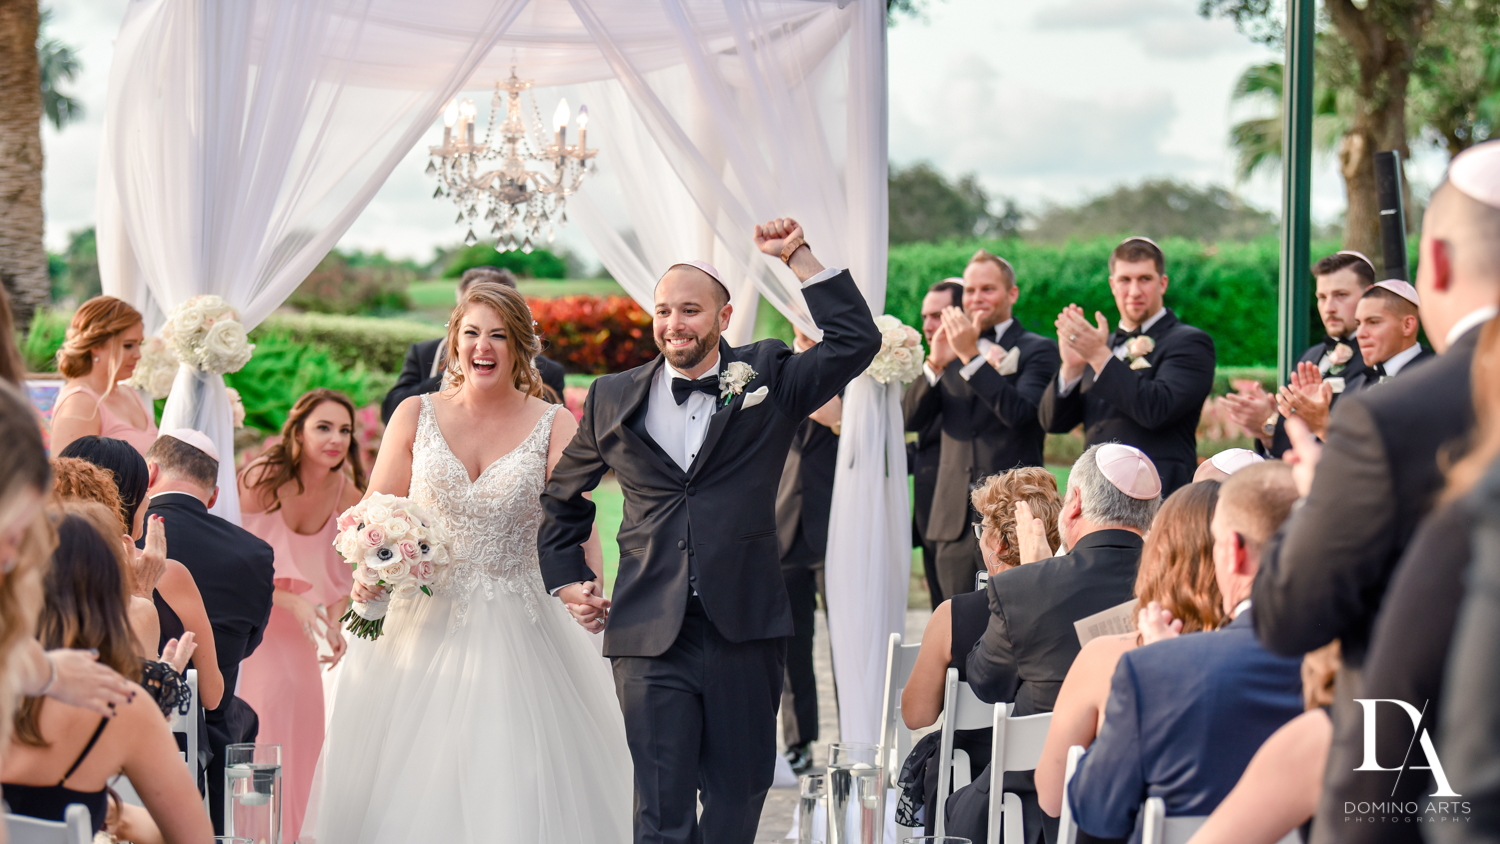 Best wedding photography at Romantic Outdoors Wedding at Woodfield Country Club in Boca Raton, Florida by Domino Arts Photography